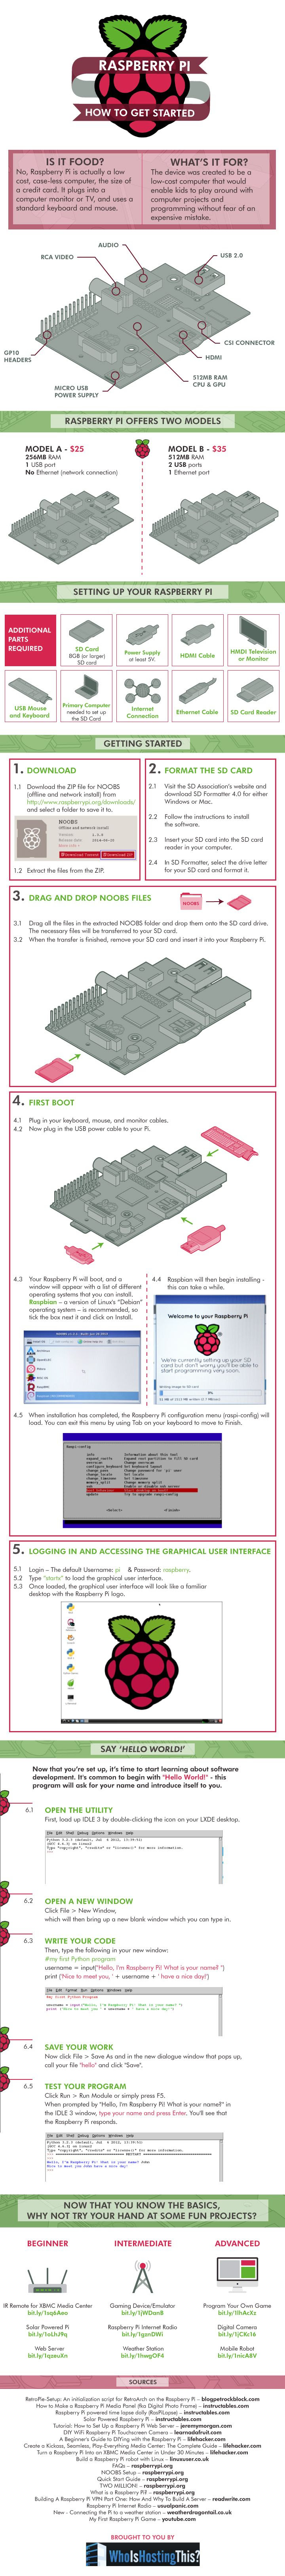 Infographic: Raspberry Pi: How To Get Started #infographic